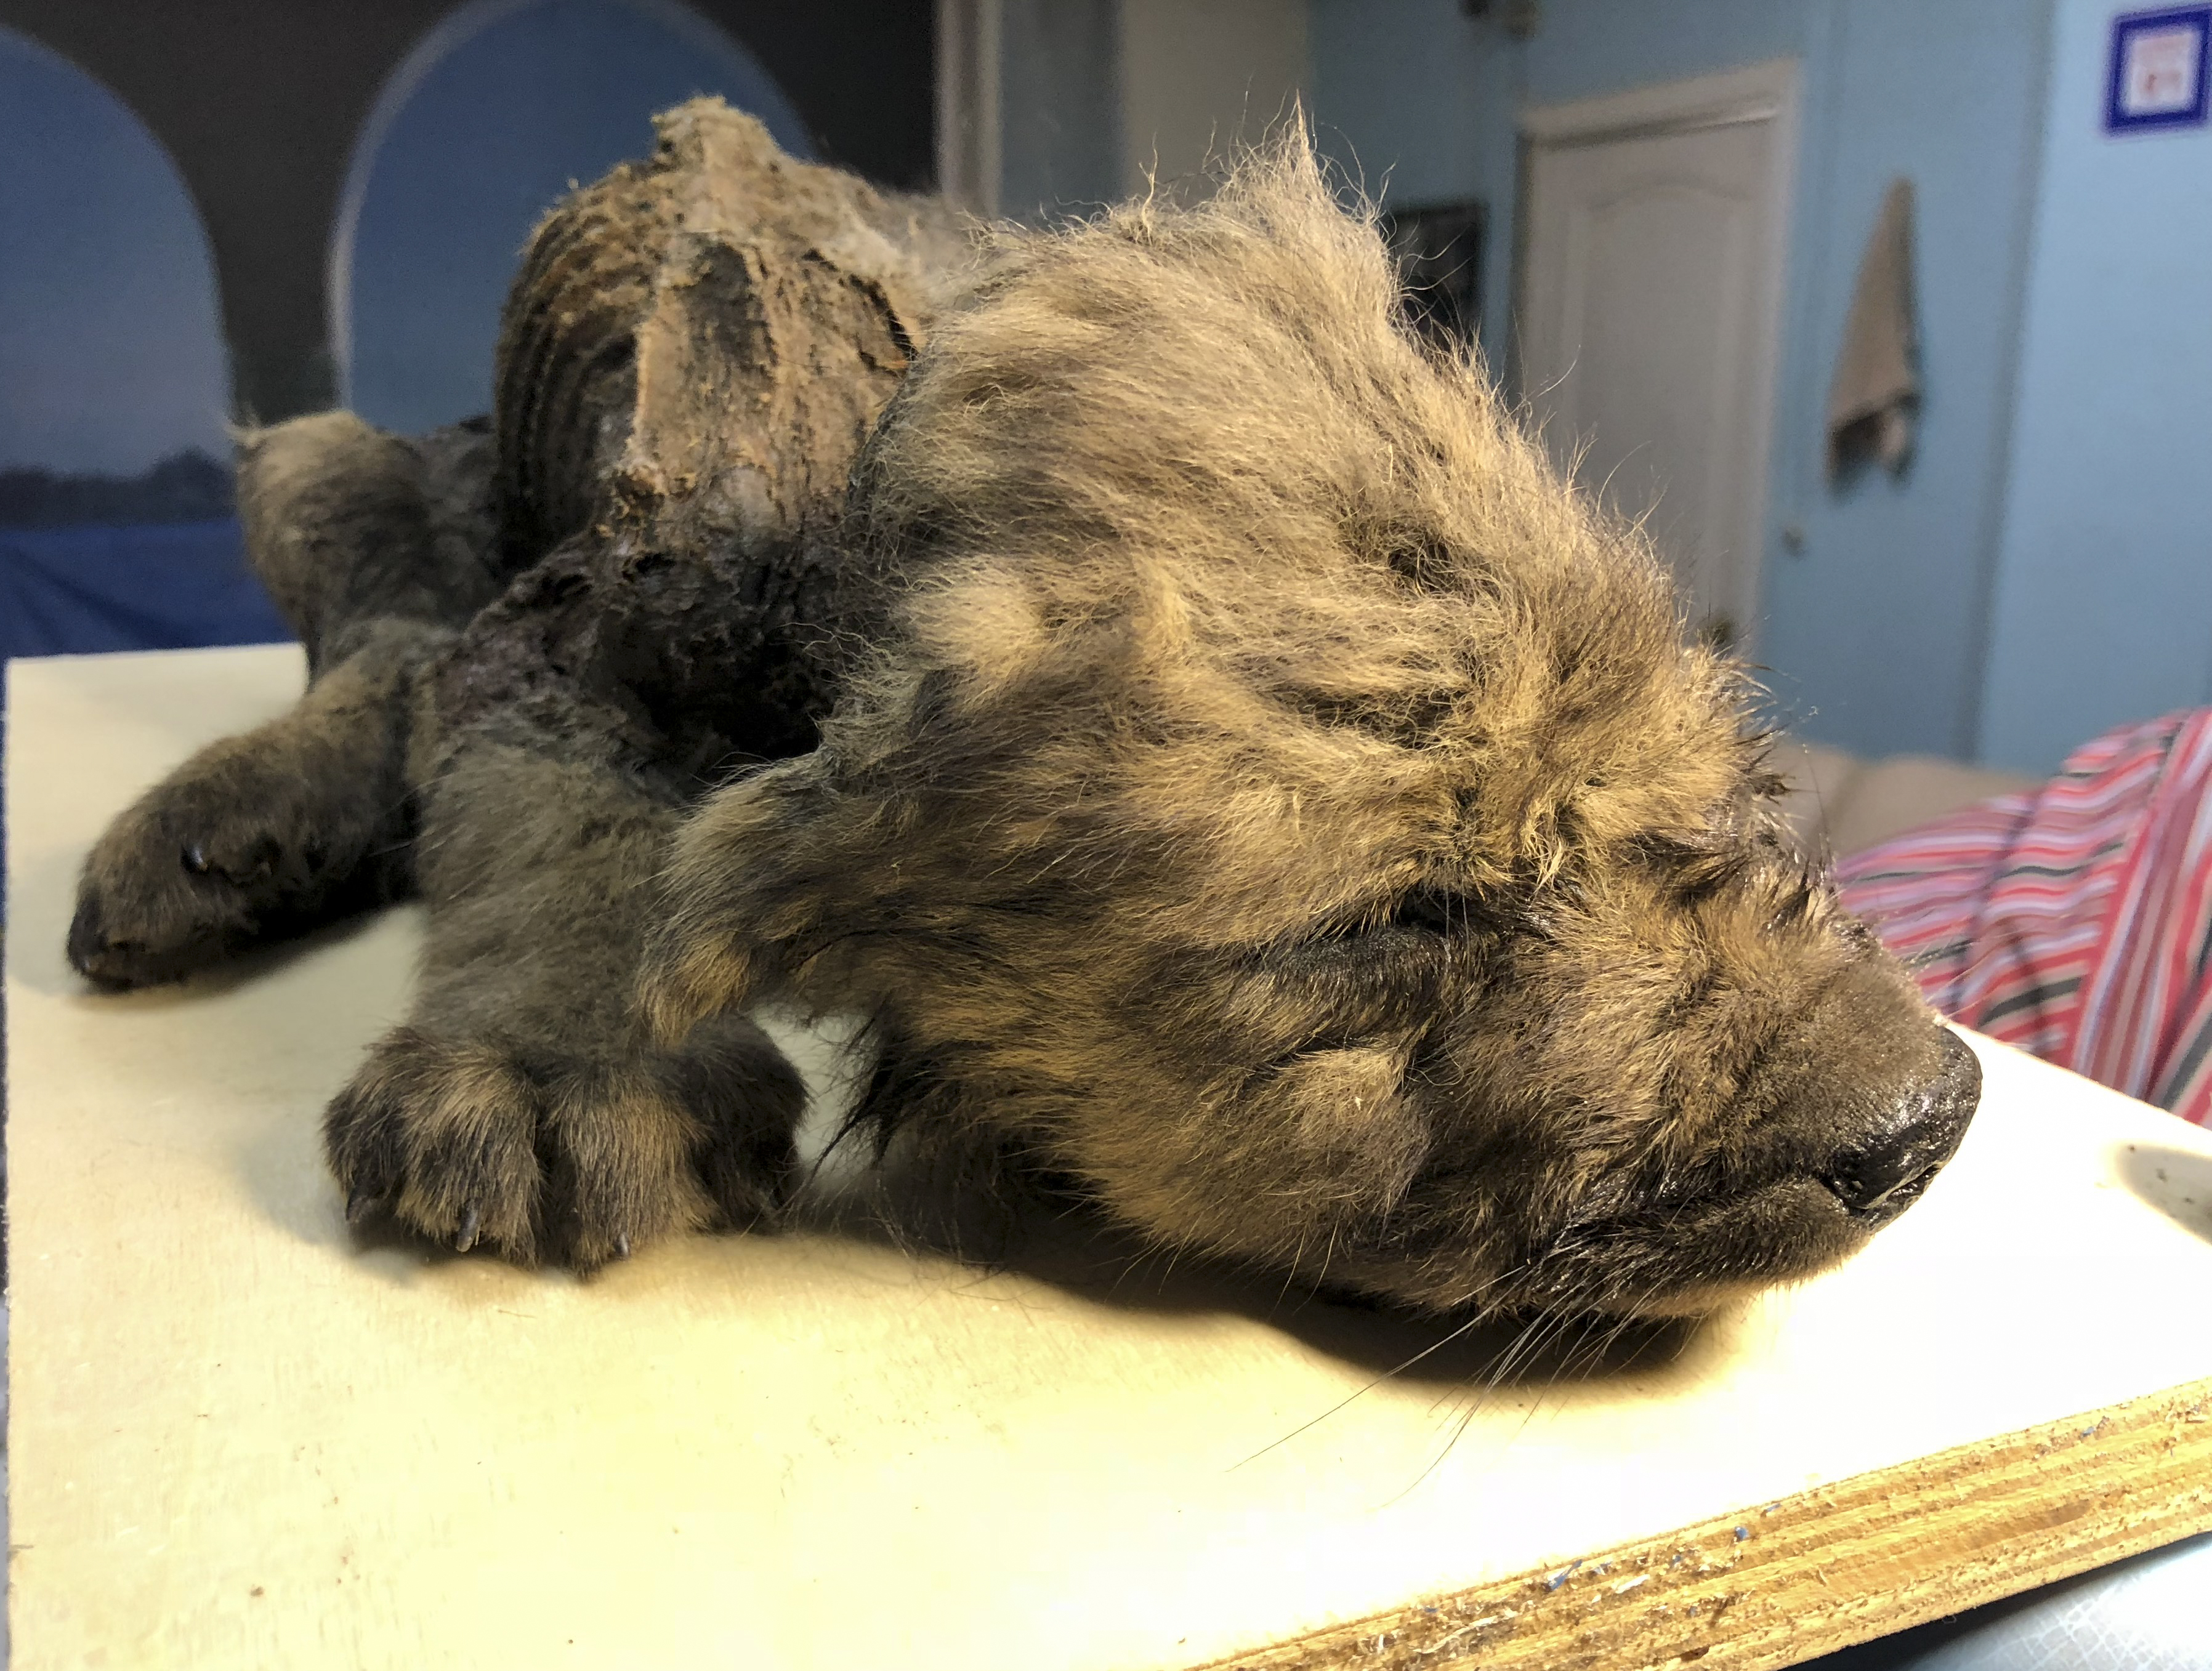 This is a handout photo taken on Monday, Sept. 24, 2018, showing a 18,000 years old Puppy found in permafrost in the Russia's Far East, on display at the Yakutsk's Mammoth Museum, Russia.